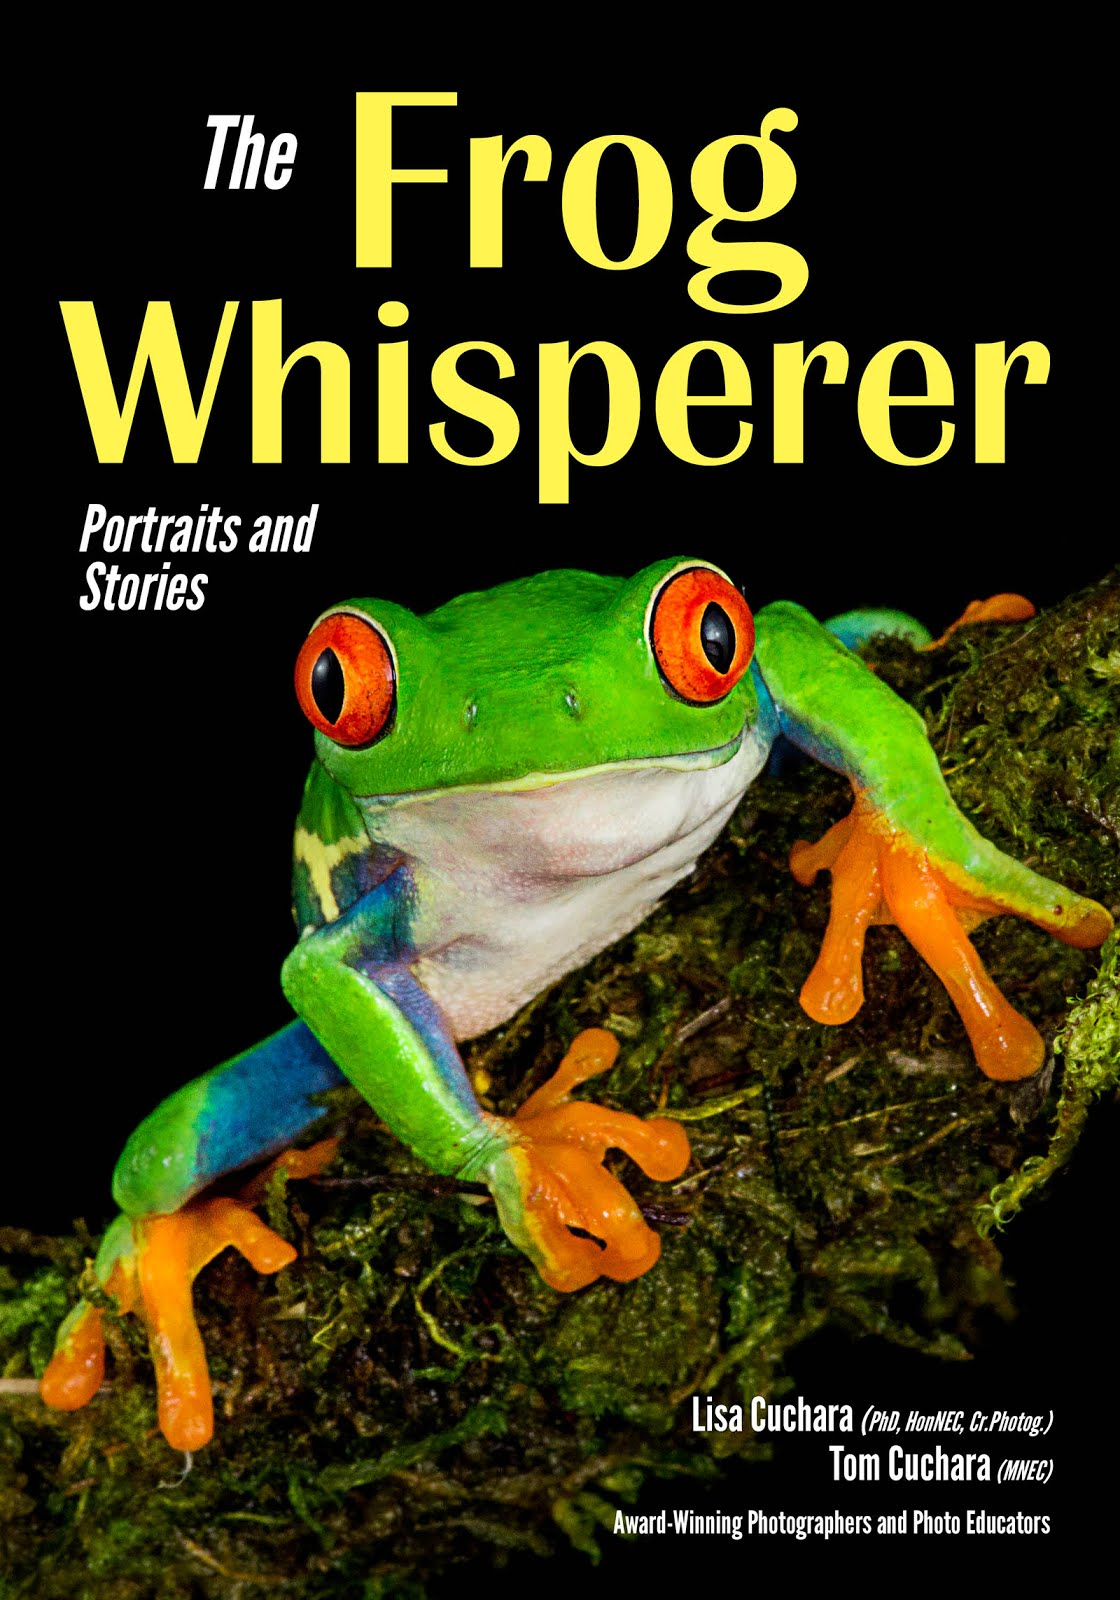 Our 2nd Book: The Frog Whisperer